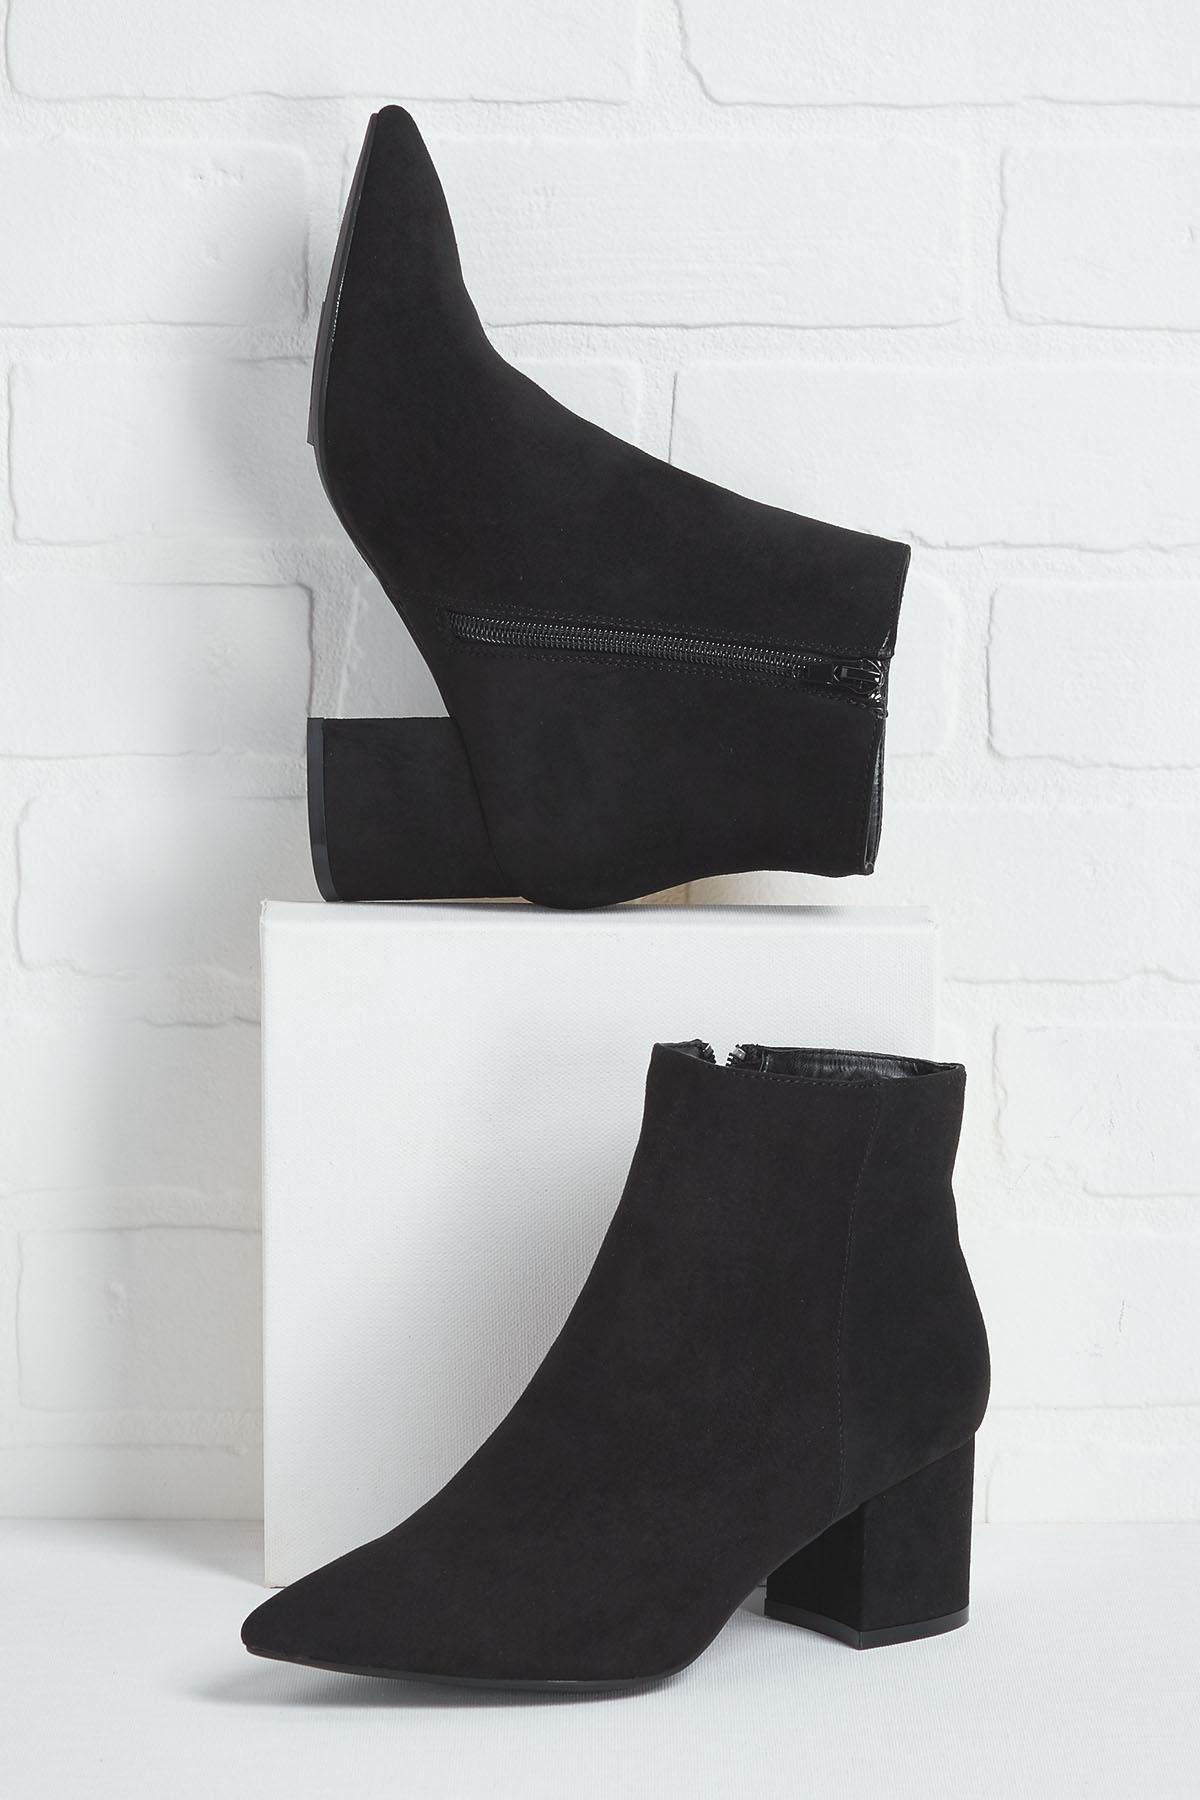 No Boots About It Booties